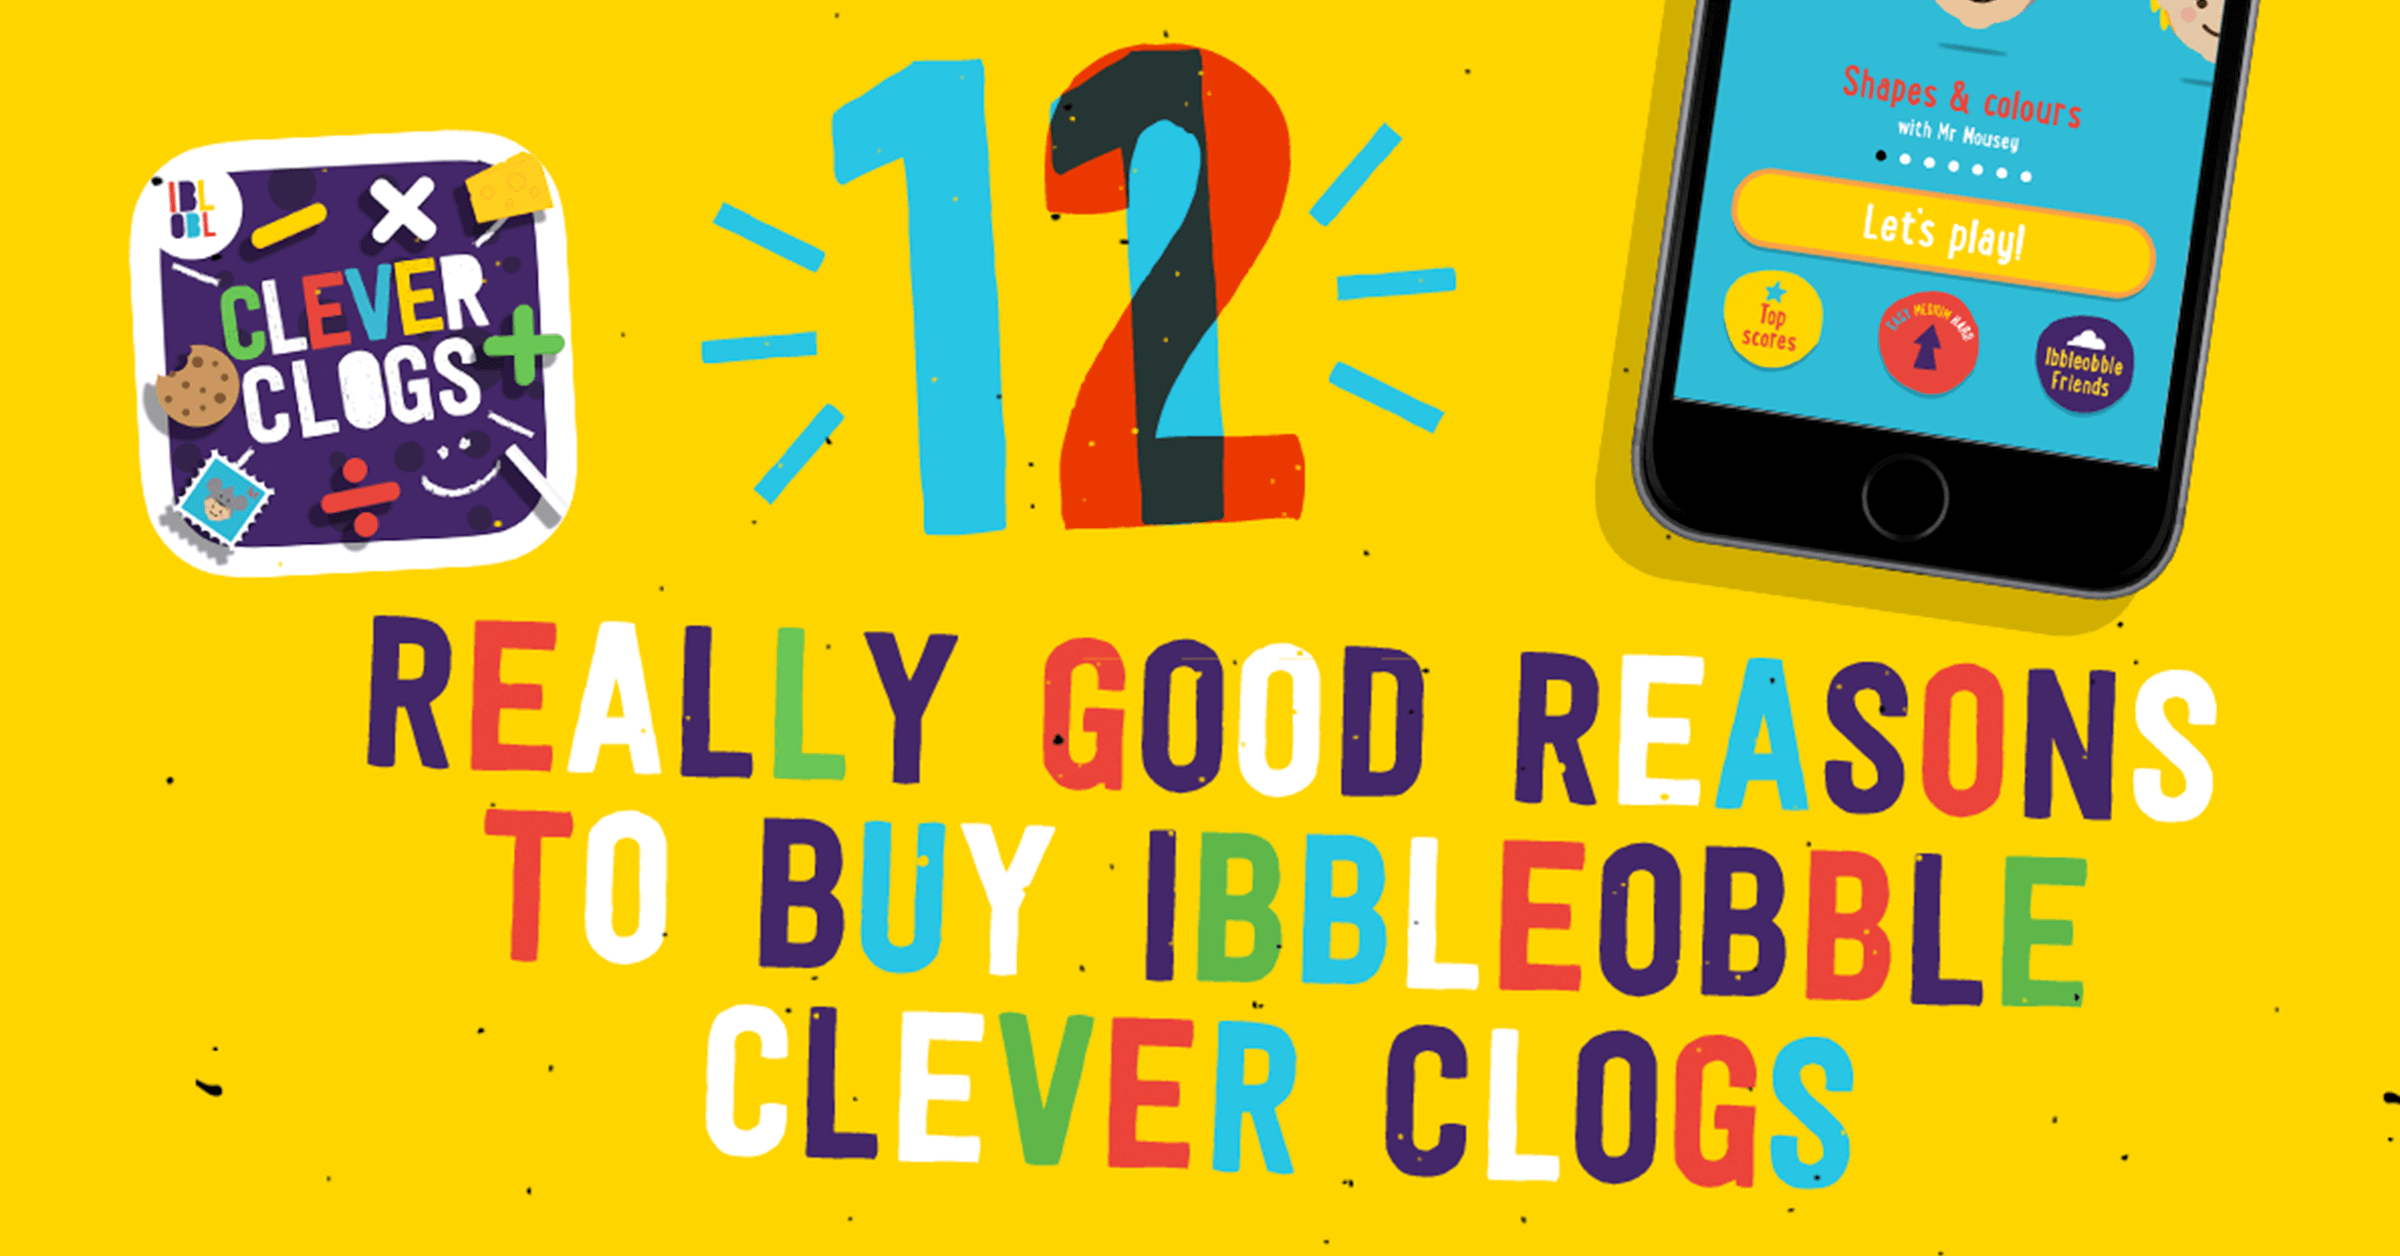 Ibbleobble Clever clogs - a cost-effective educational App bundle for kids